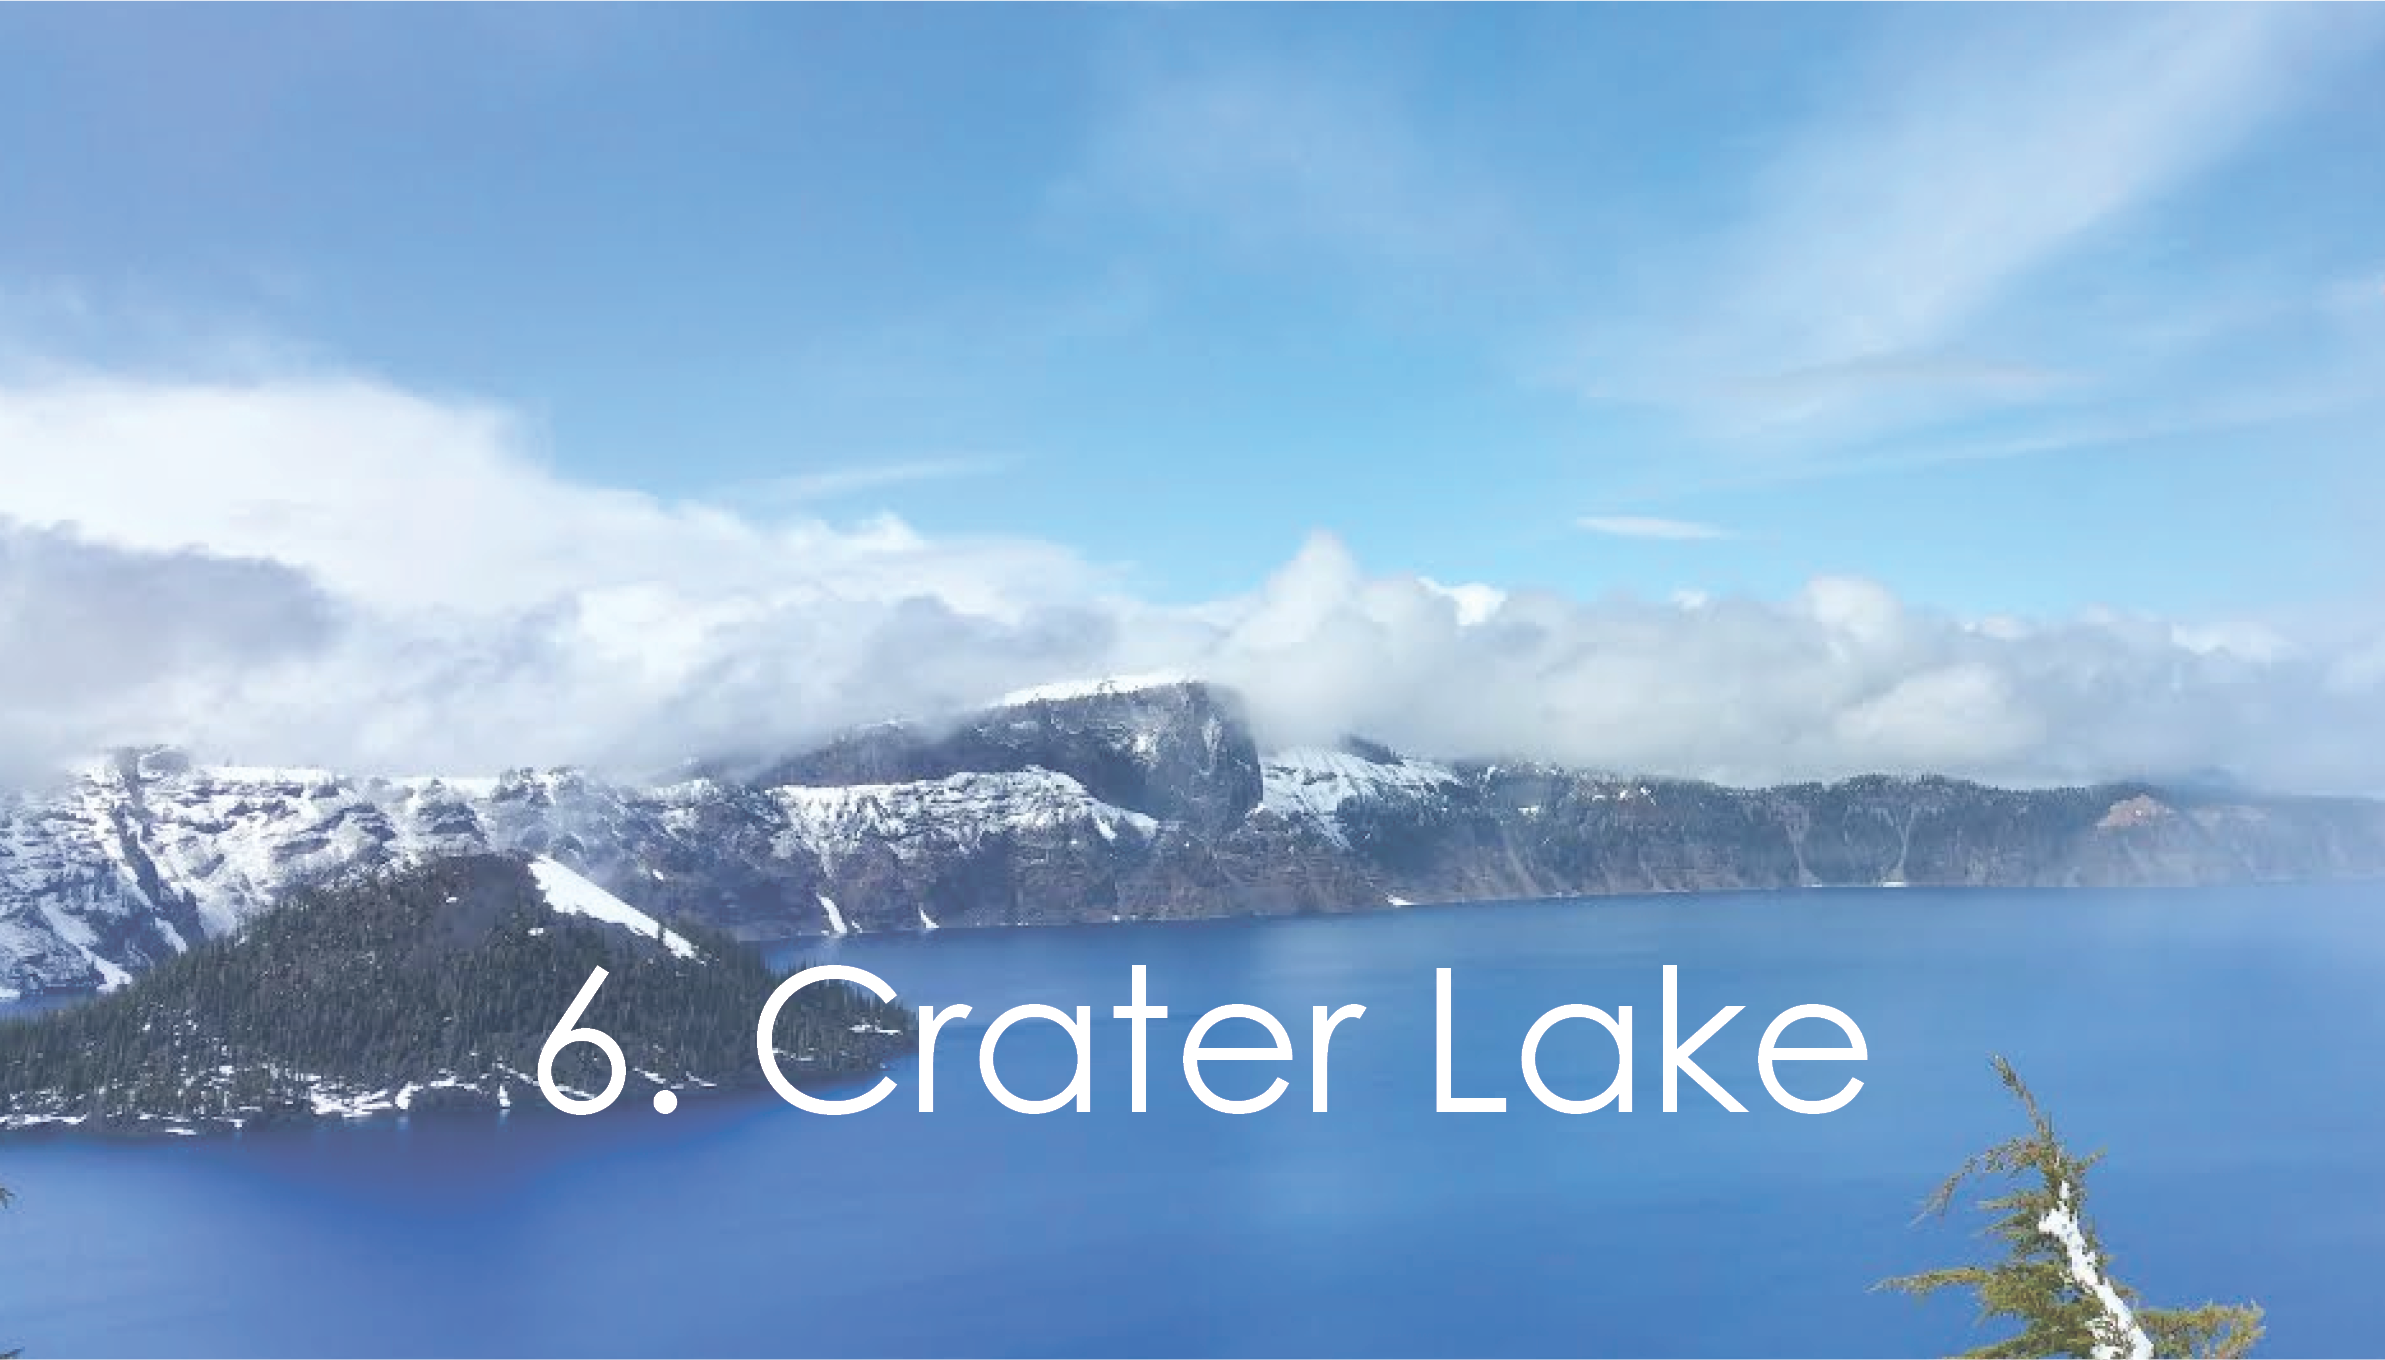 6 crater lake.png